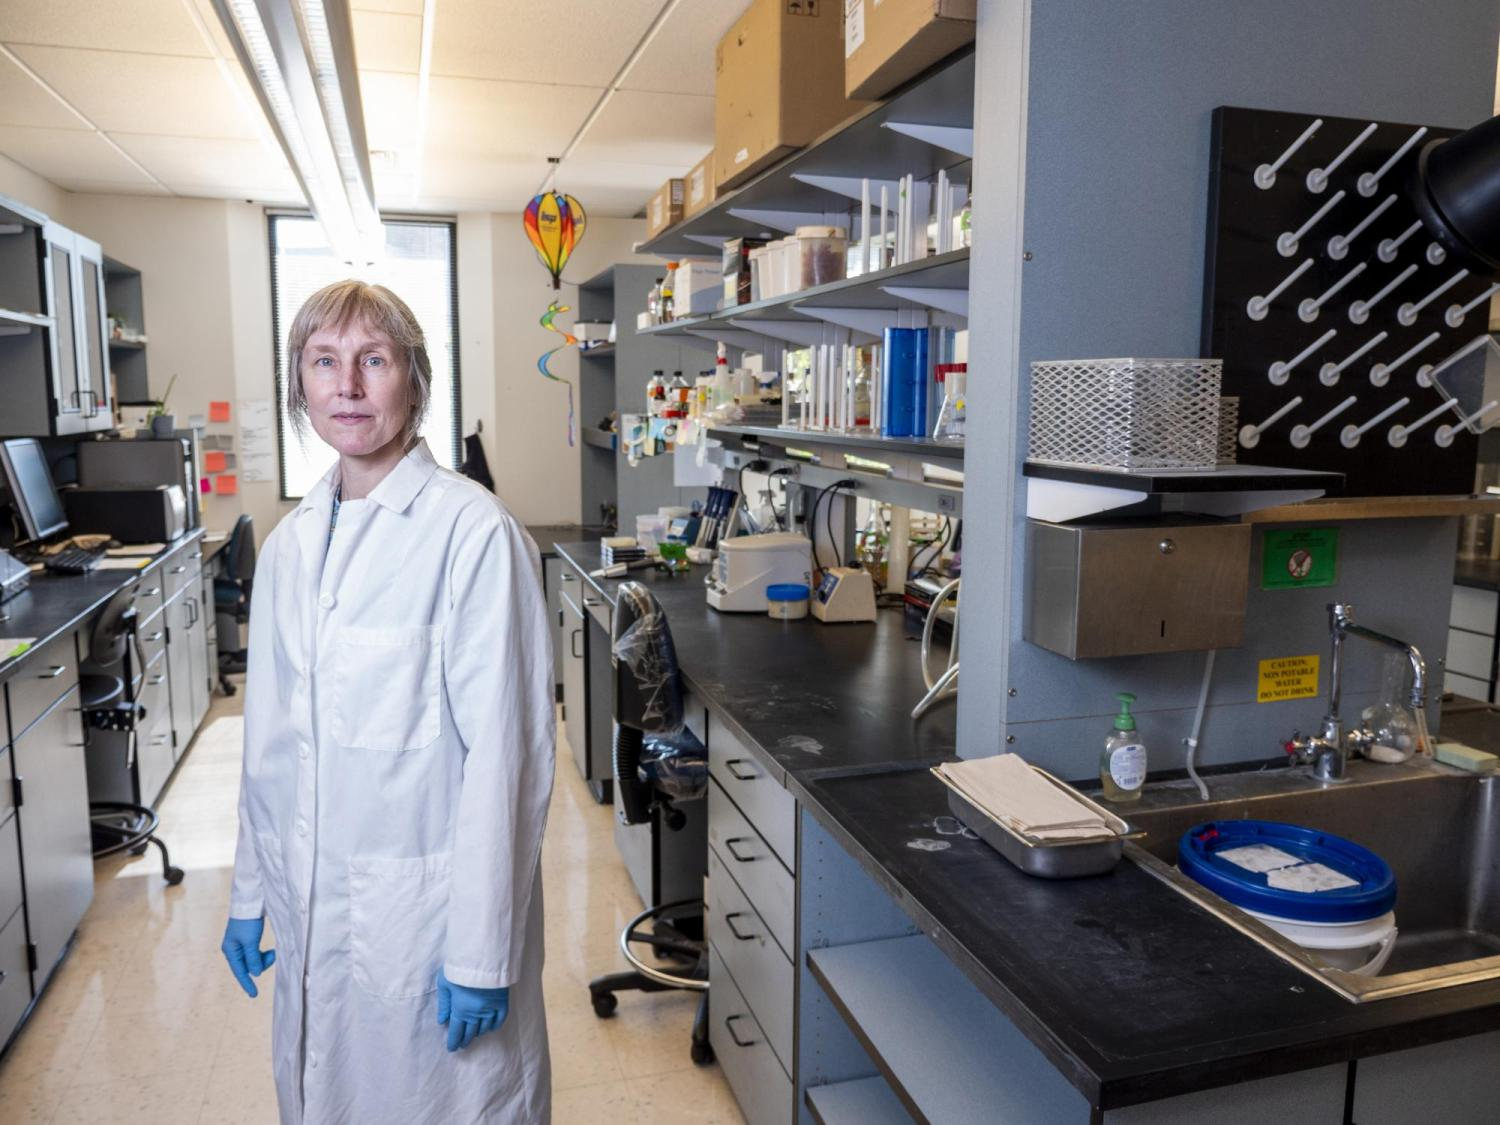 Corrie Detweiler in the lab